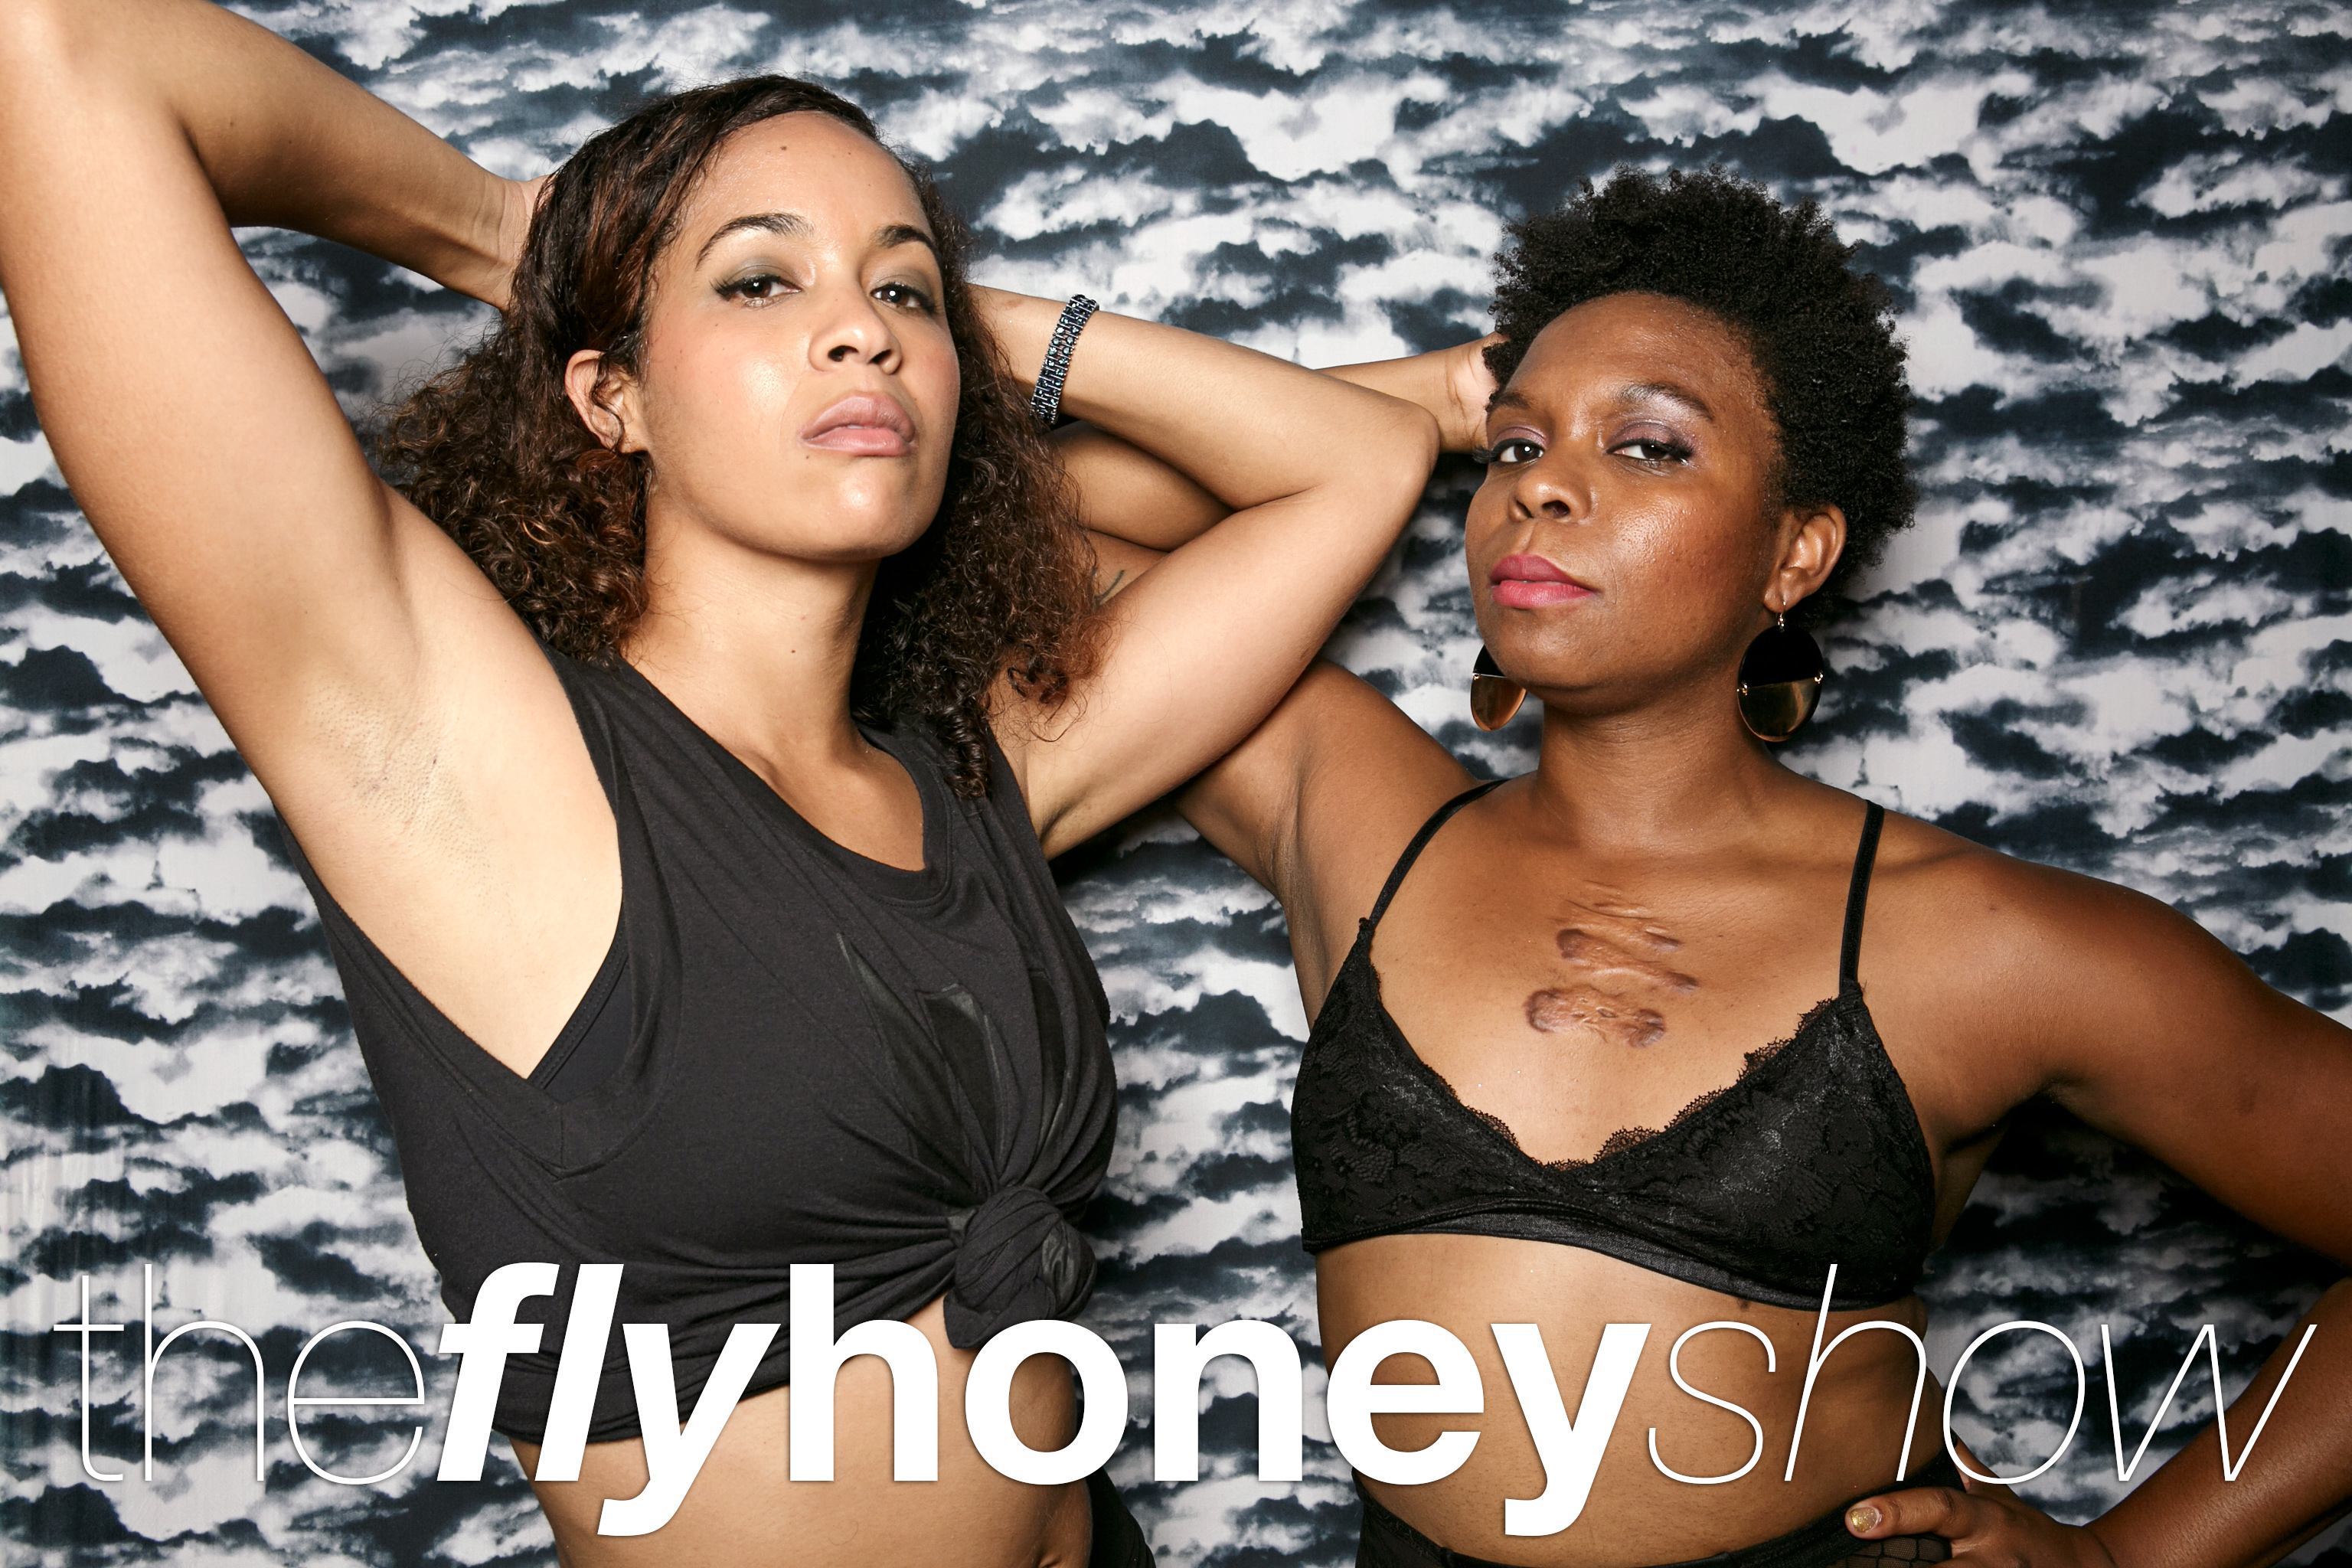 photobooth portraits from the fly honey show at chopin theater, august 18, 2016